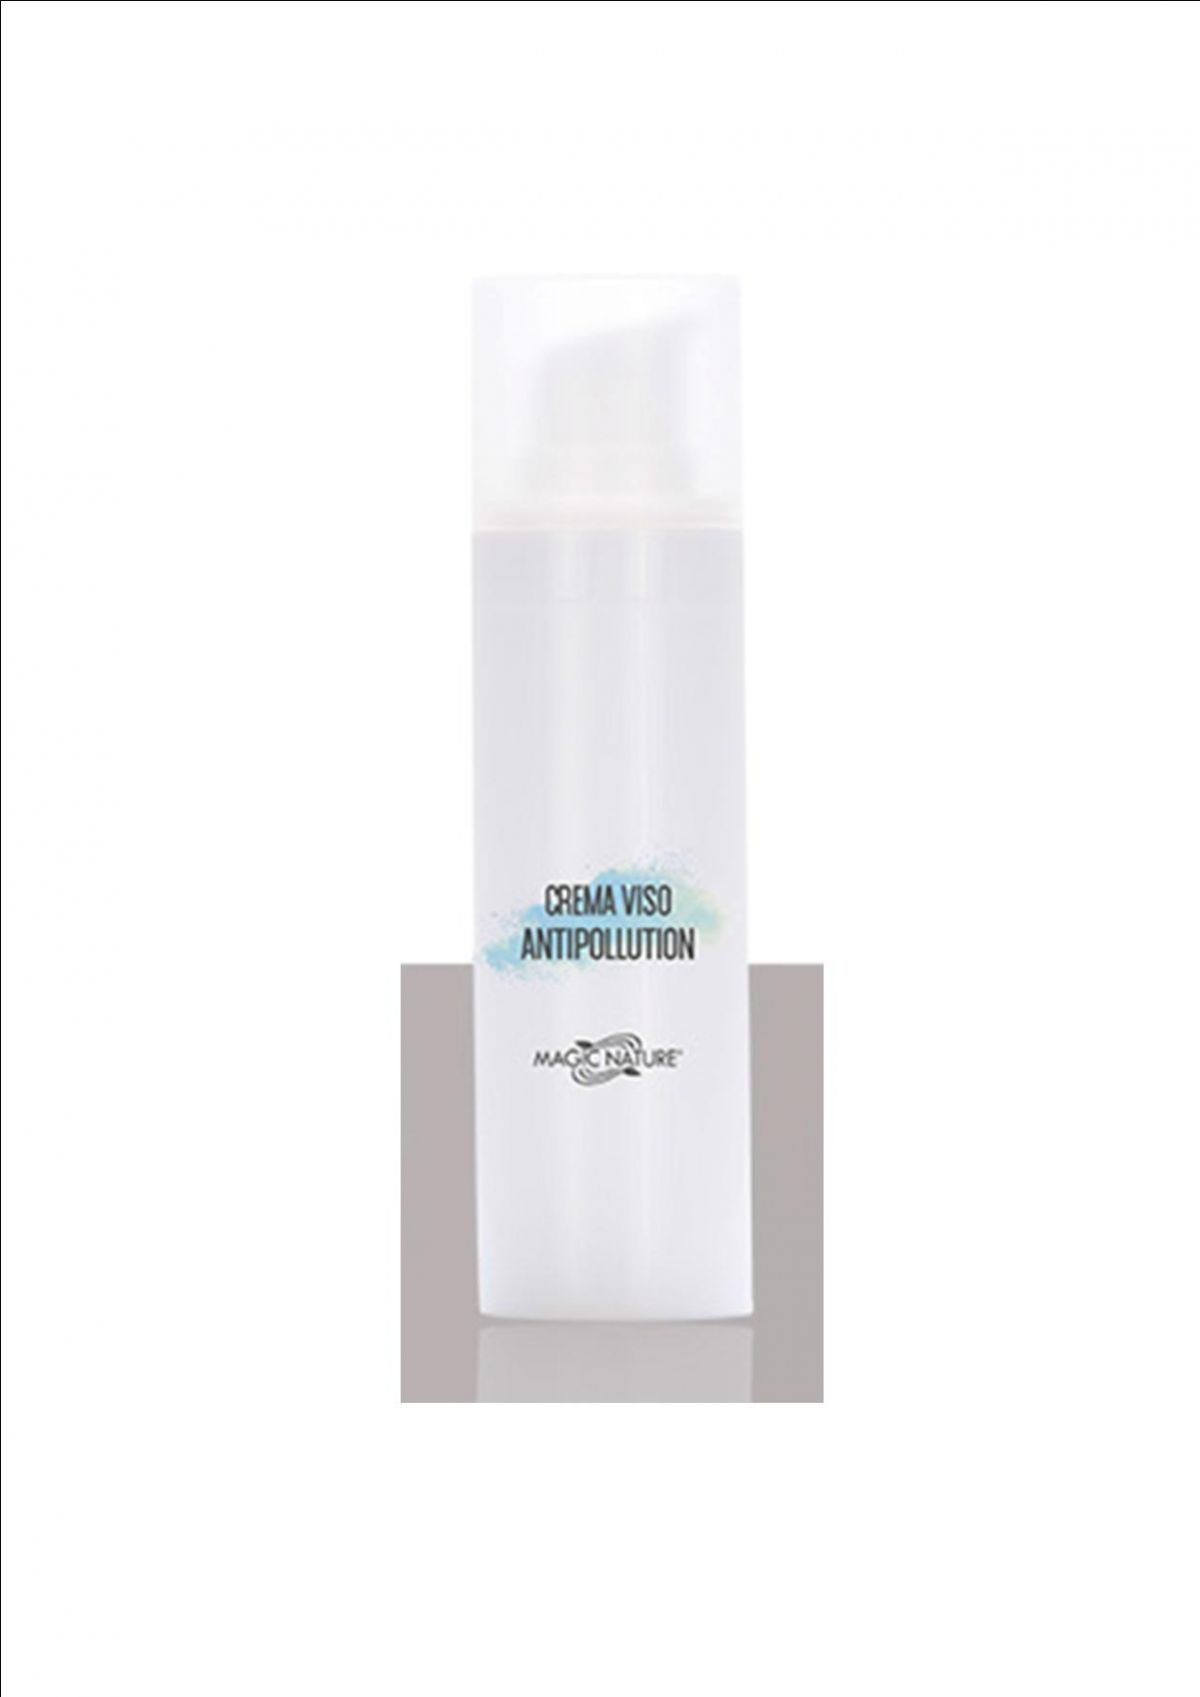 CREMA VISO ANTIPOLLUTION 50ML